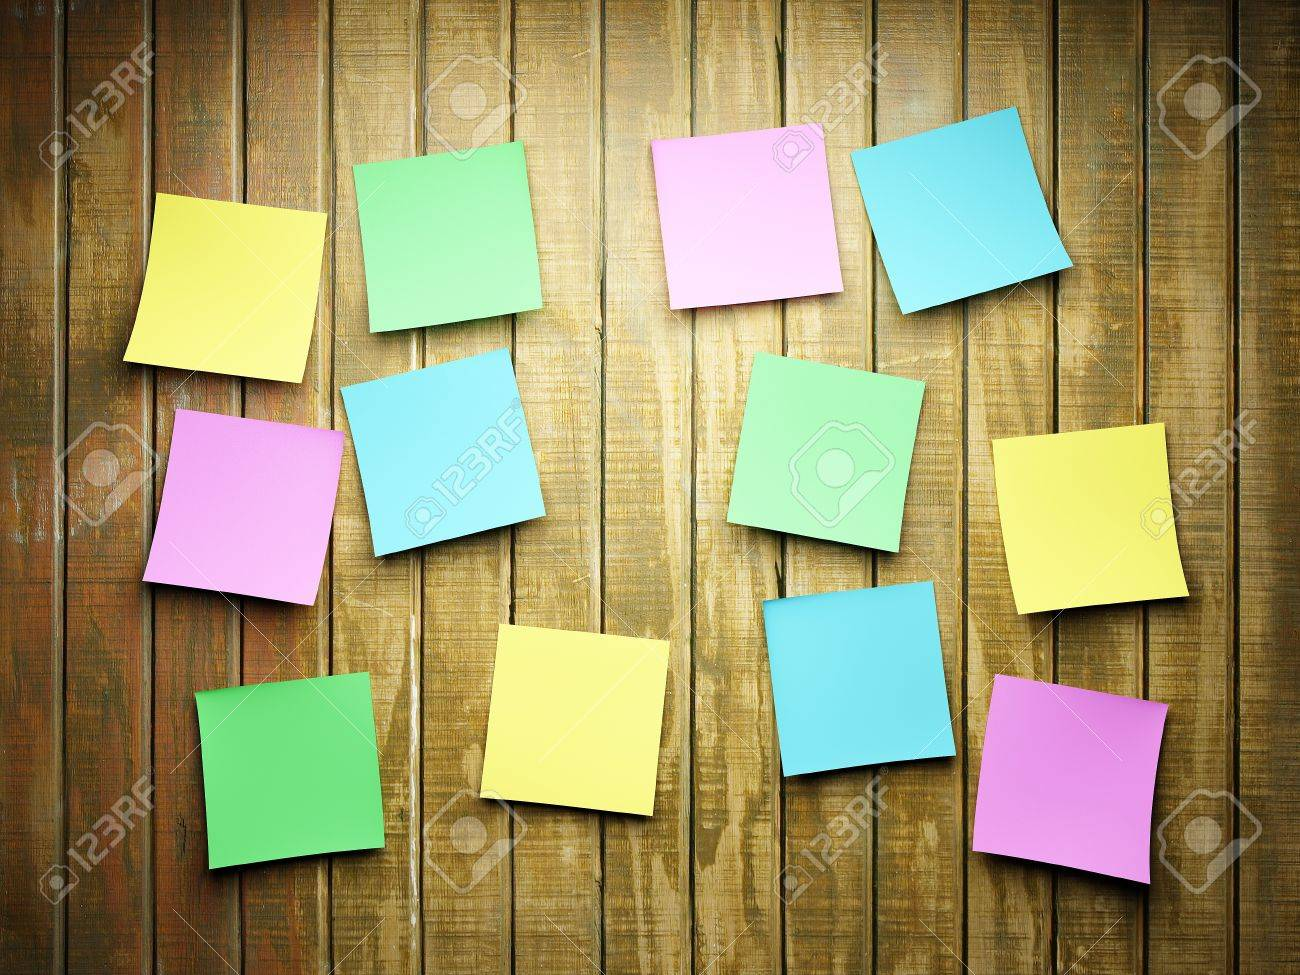 Blank Sticky Notes On A Wooden Wall